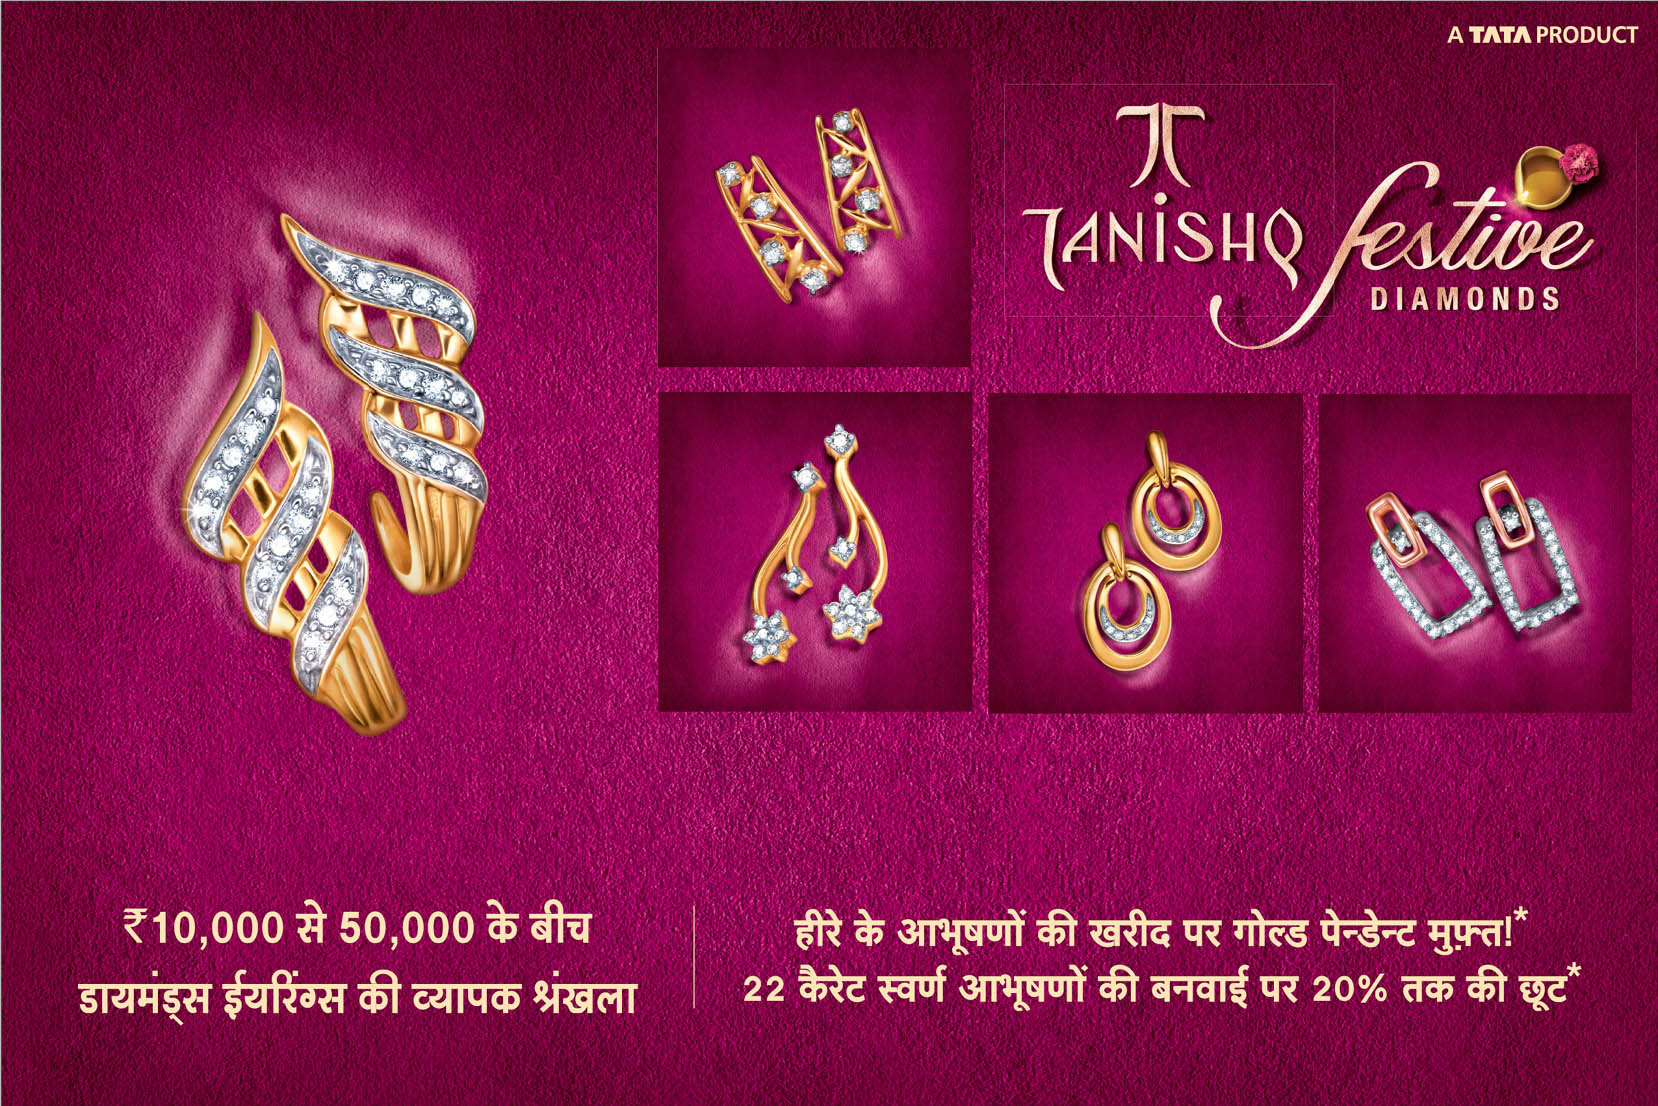 Home Design Story Free Coins Diwali Offers Schemes And Discounts On Tanishq Jewellery